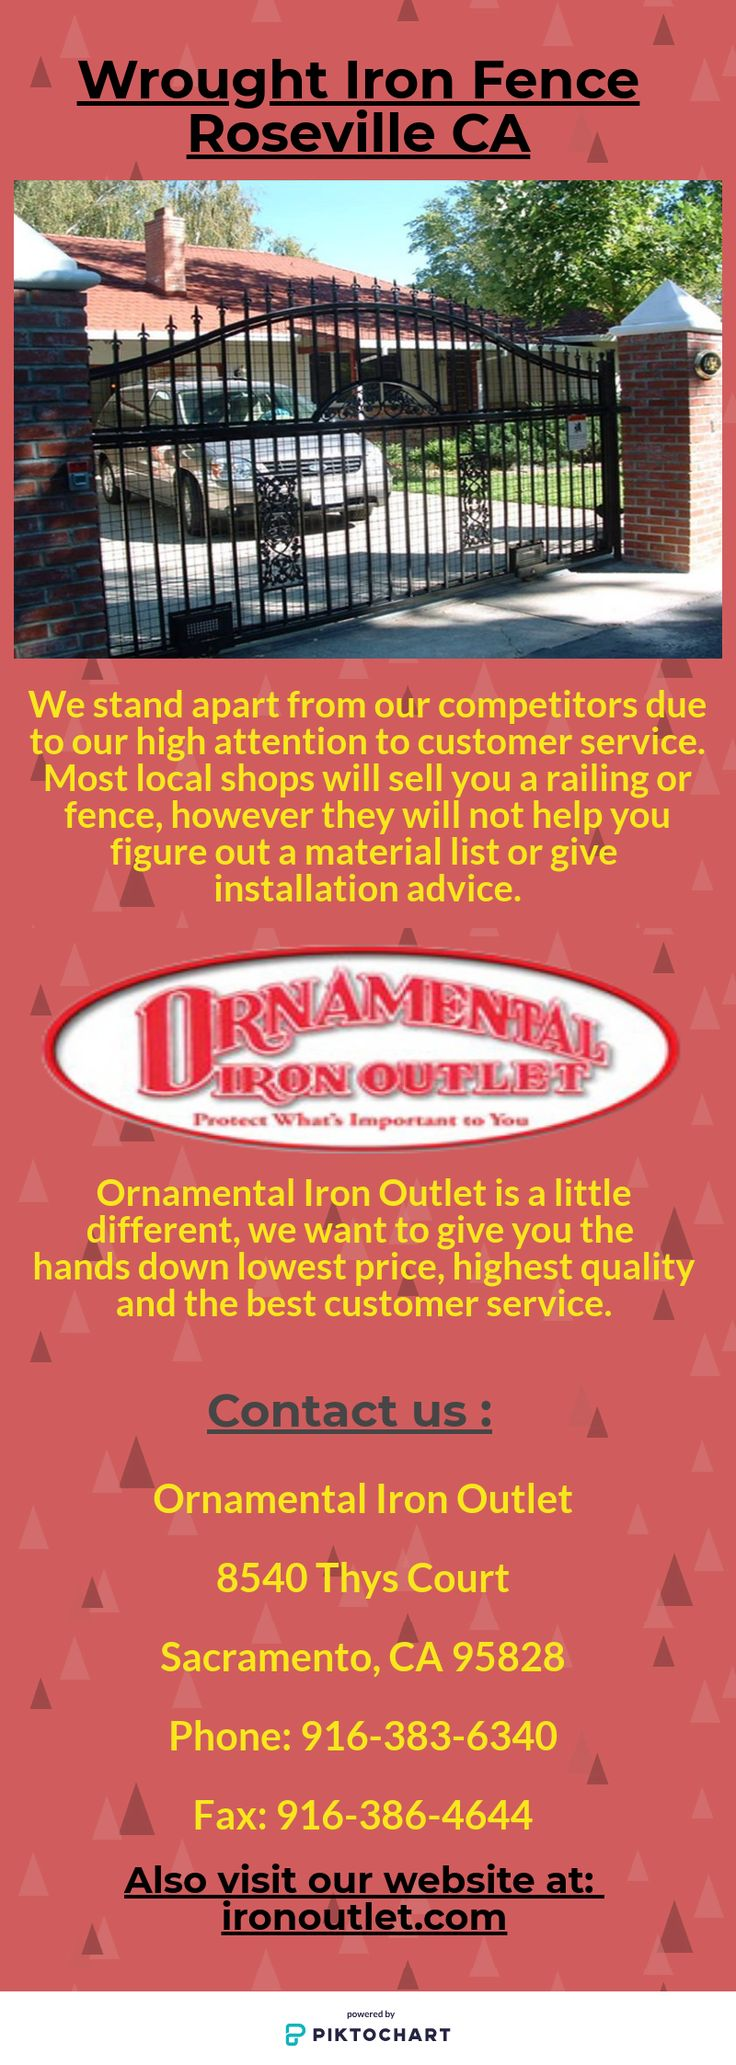 Looking for the best Wrought Iron Fence in Roseville CA? We at Ornamental Iron Outlet provide you the different varieties of designer fences and other iron products.